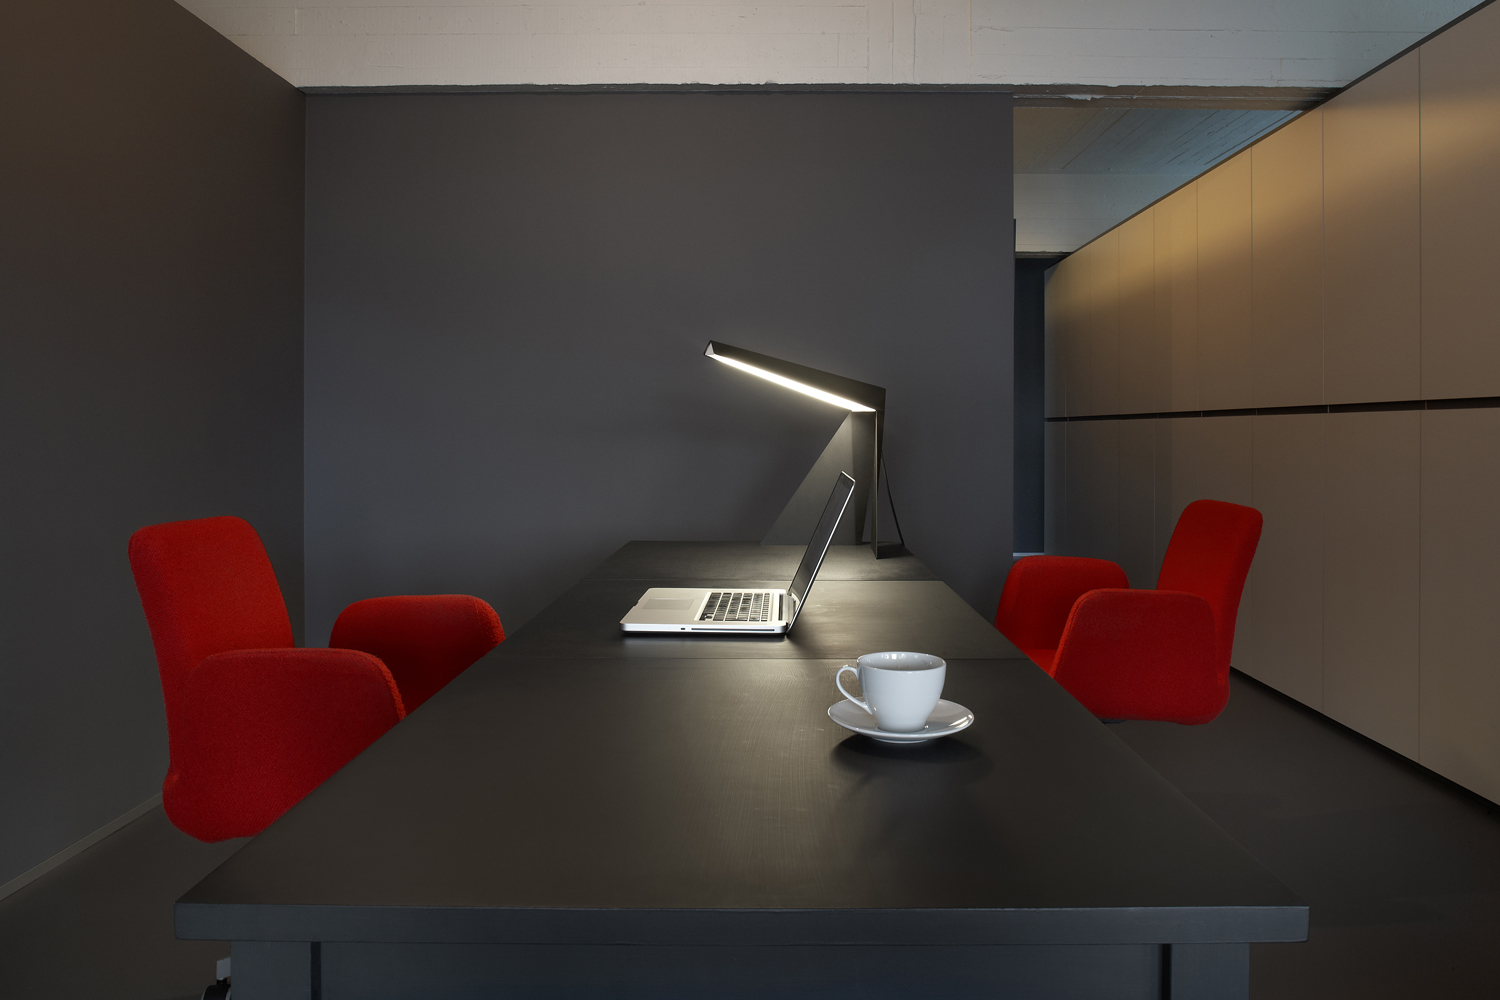 Crane Table Lamp by Alain Monnens for tossBCrane Table Lamp by Alain Monnens for tossB